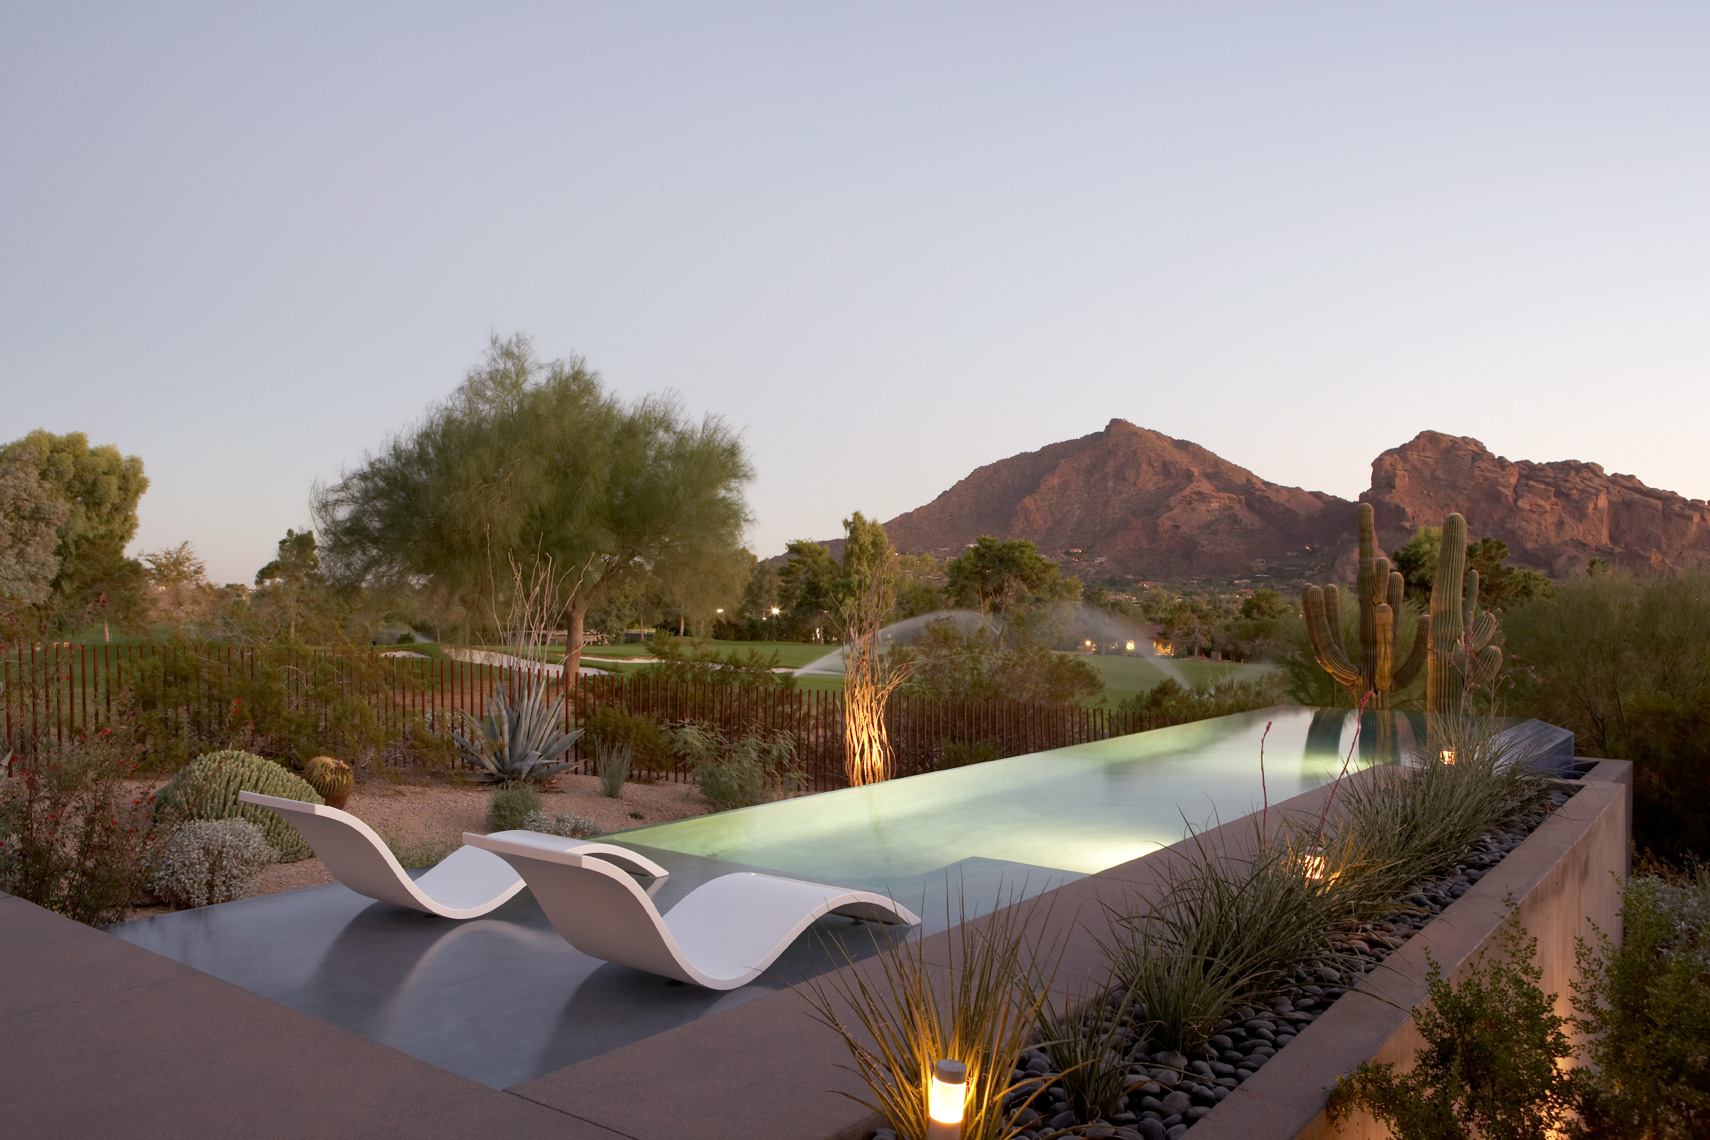 White modern chairs in blue pool at dusk in the desert with mountains behind